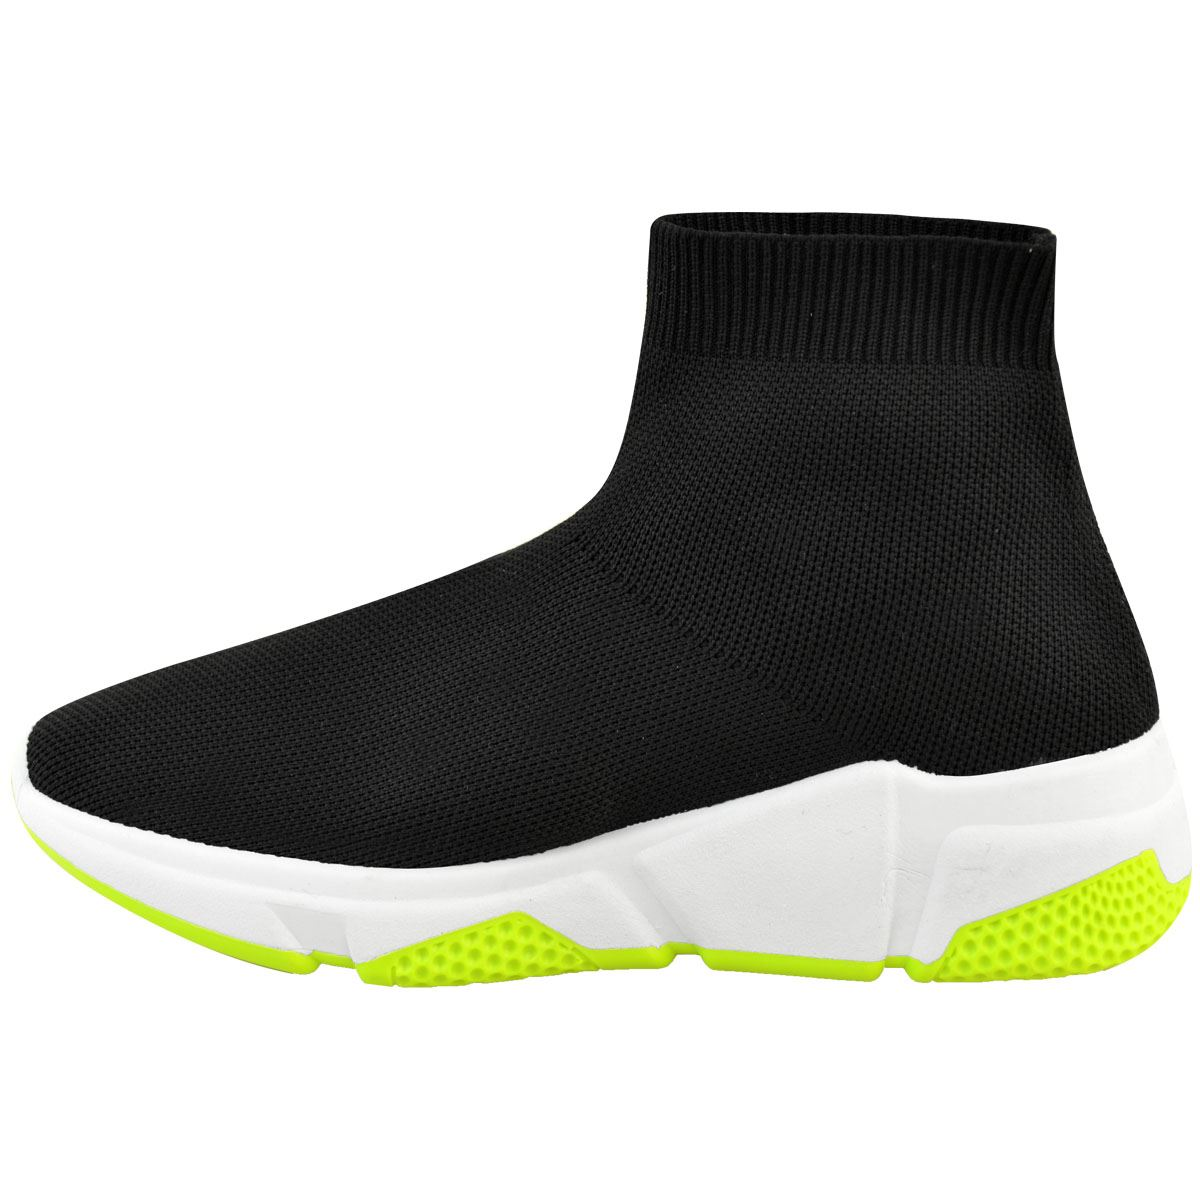 UK Womens Ladies Sneakers Trainers Sock Runners Comfy Speed Knit Gym Shoes Sizes